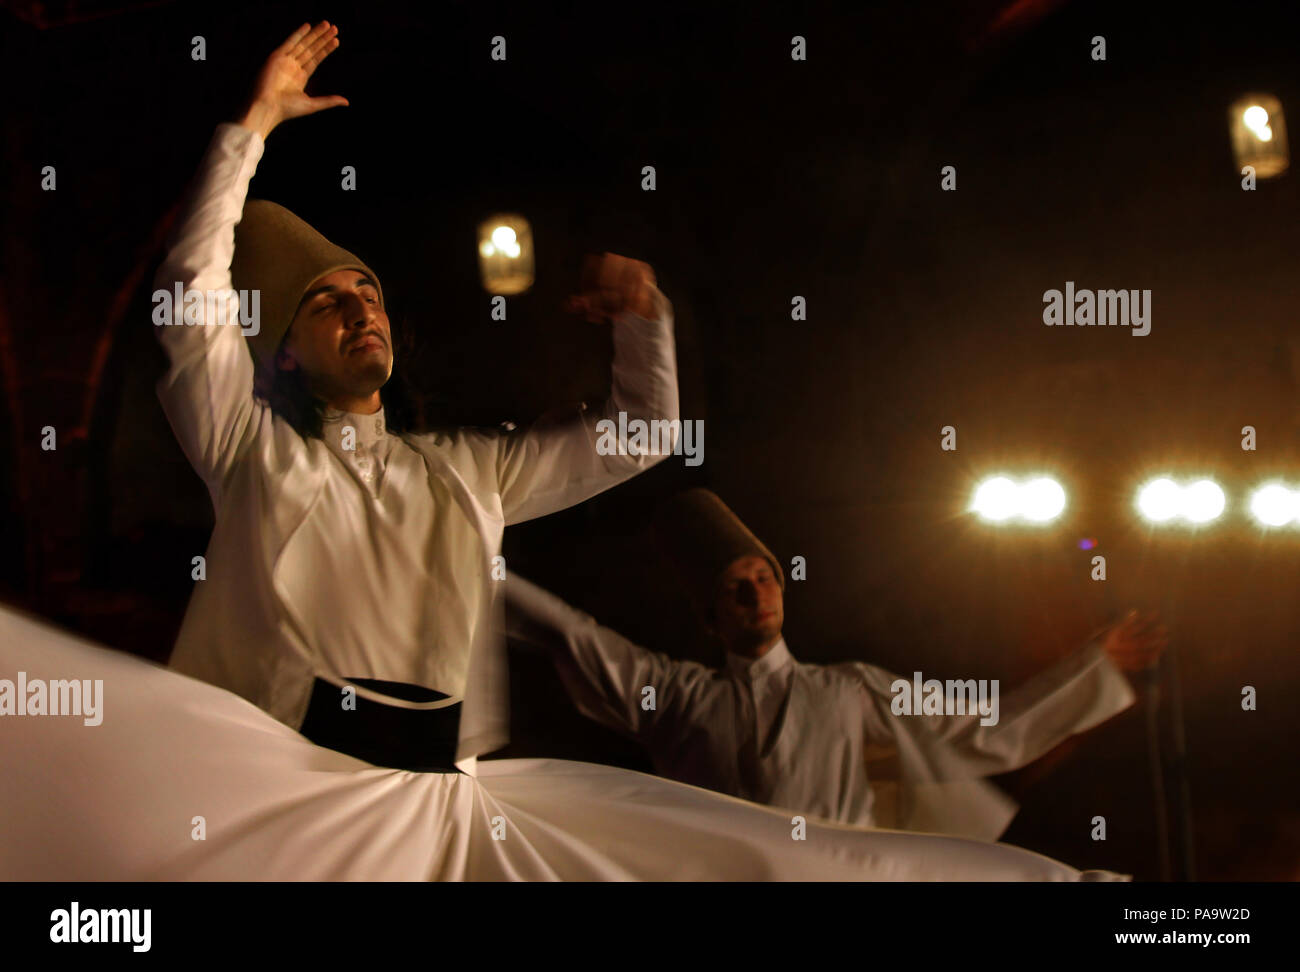 Whirling  dervishes from Turkey perform during the holy month of Ramadan at the historical Khan al-Franj in the southern Lebanese port city of Sidon. - Stock Image